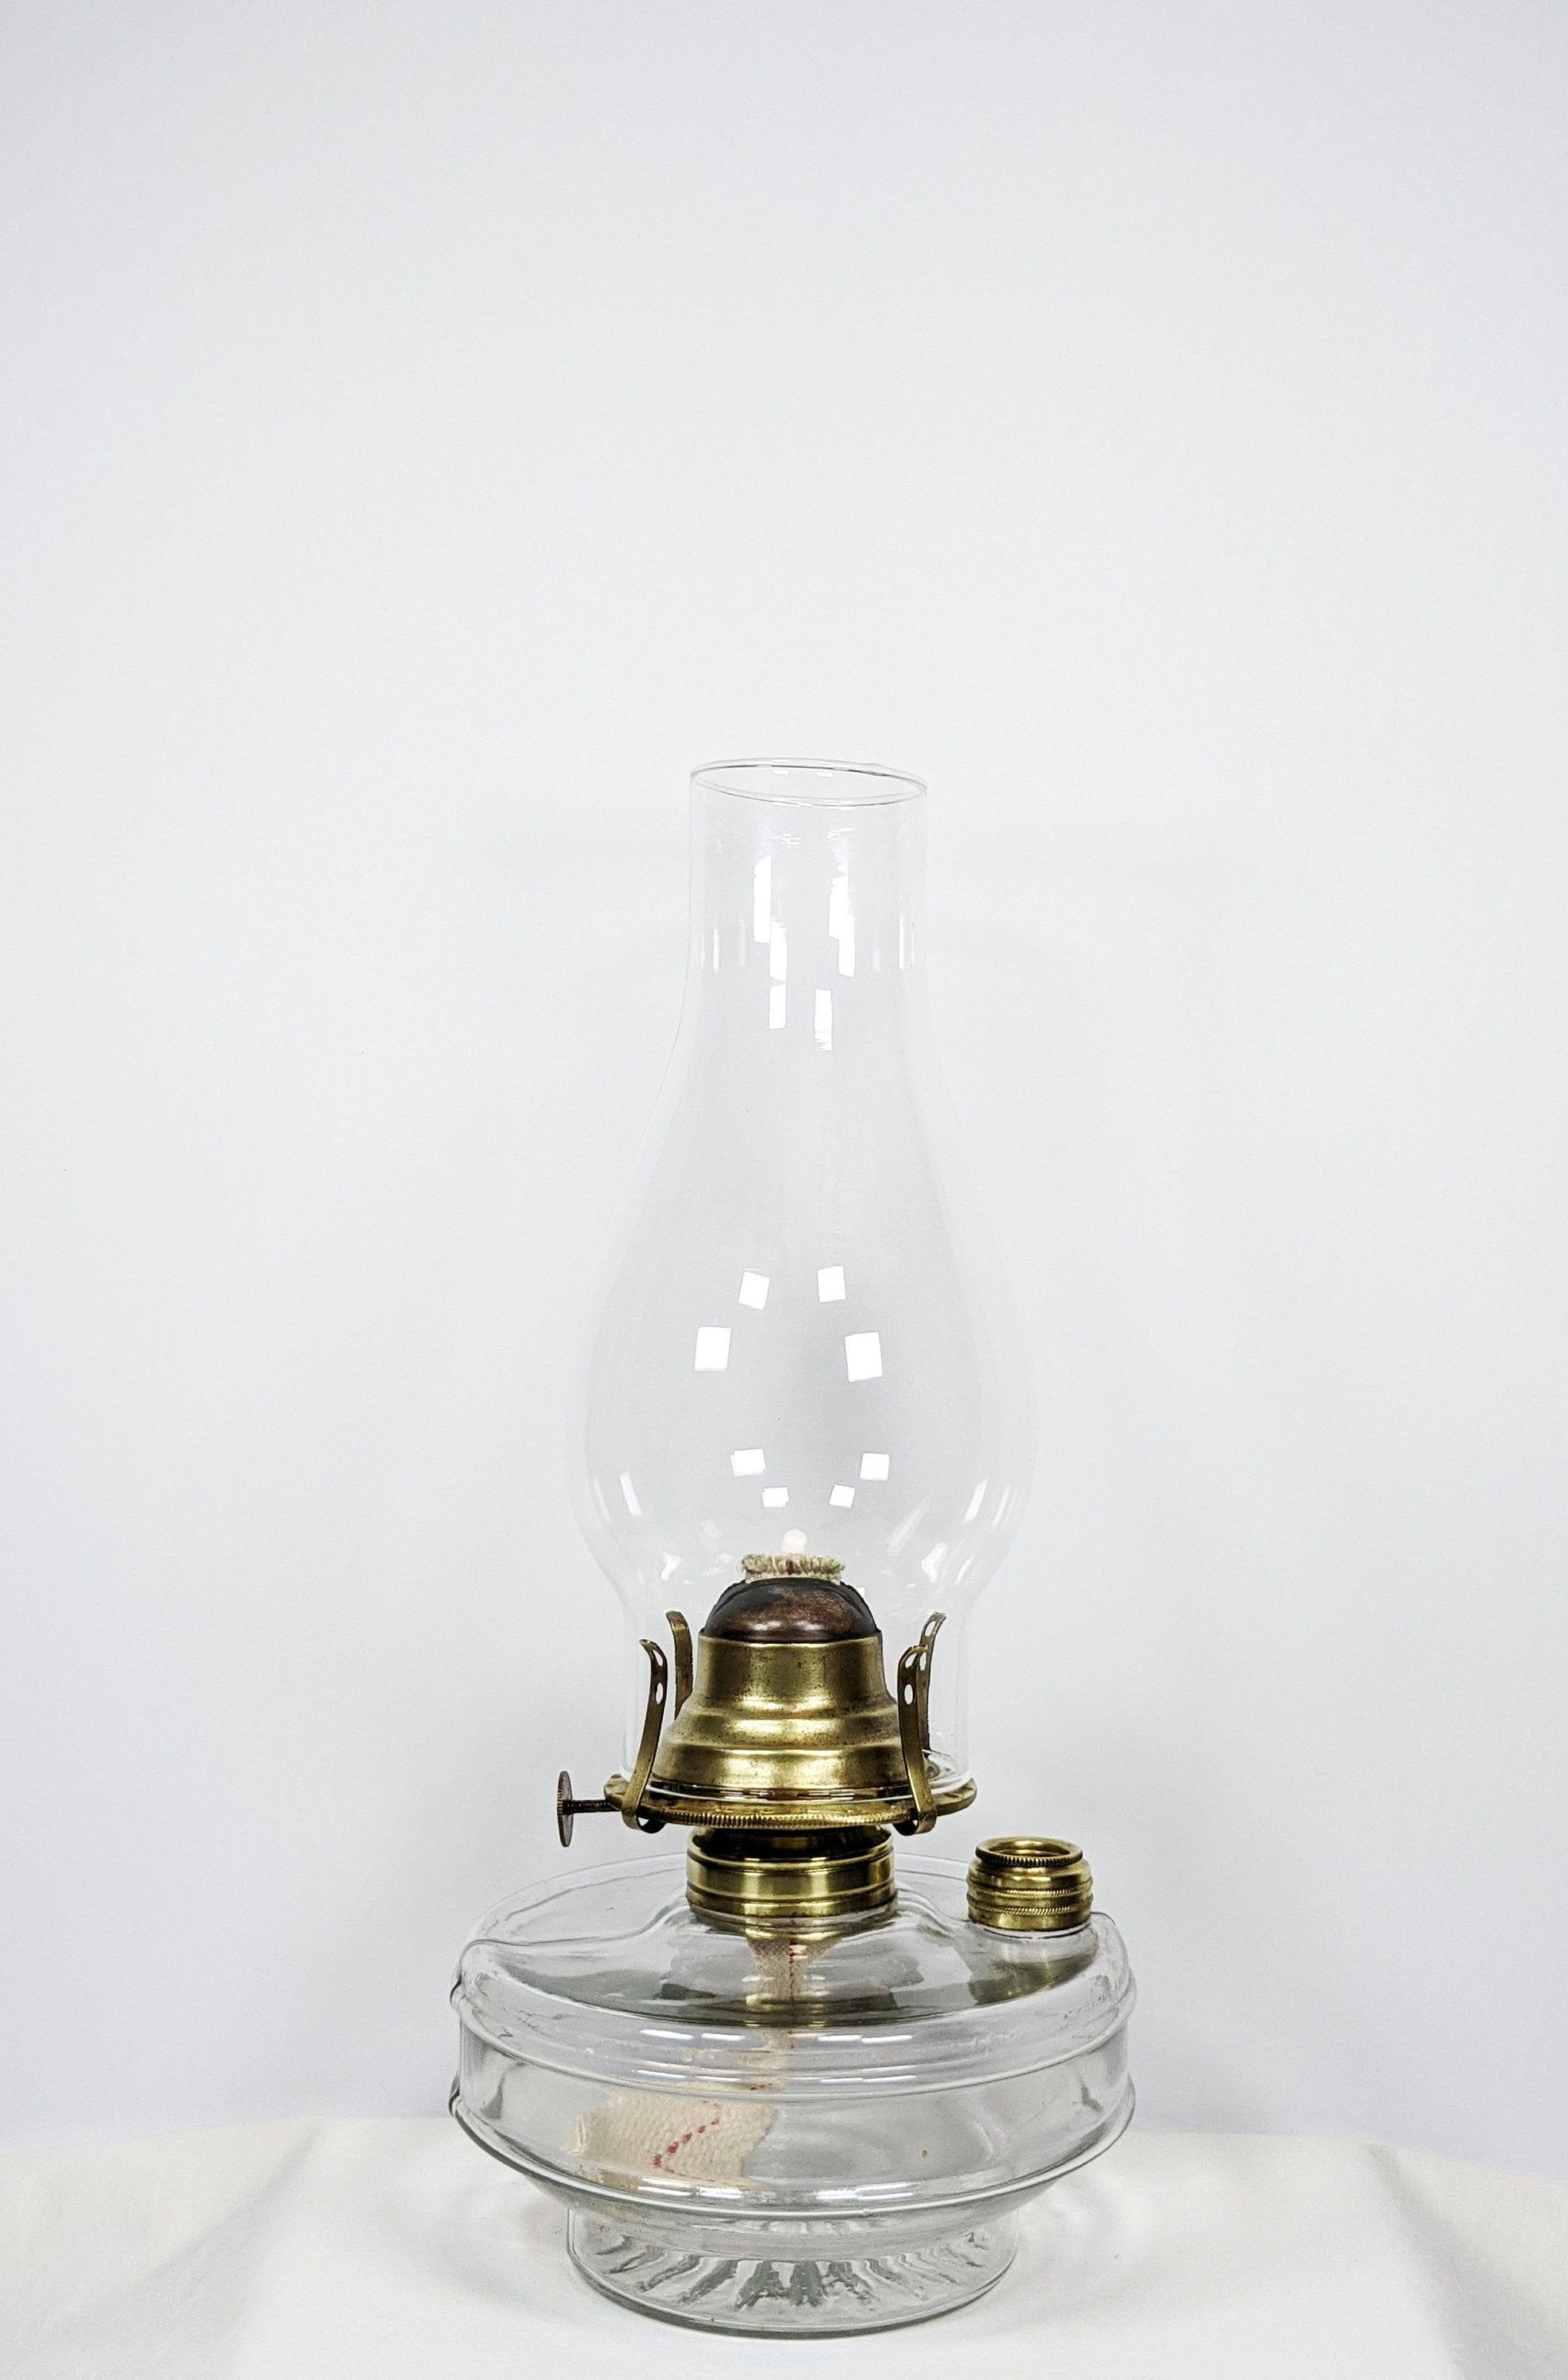 Oil Lamp Antique Glass Oil Lamp Kerosene Lamp Oil Lantern Victory Oil Burner Brass Fill Cap Hurricane Oil Lamp 1800 S Canada Vintage In 2020 Hurricane Oil Lamps Oil Lamps Oil Lantern